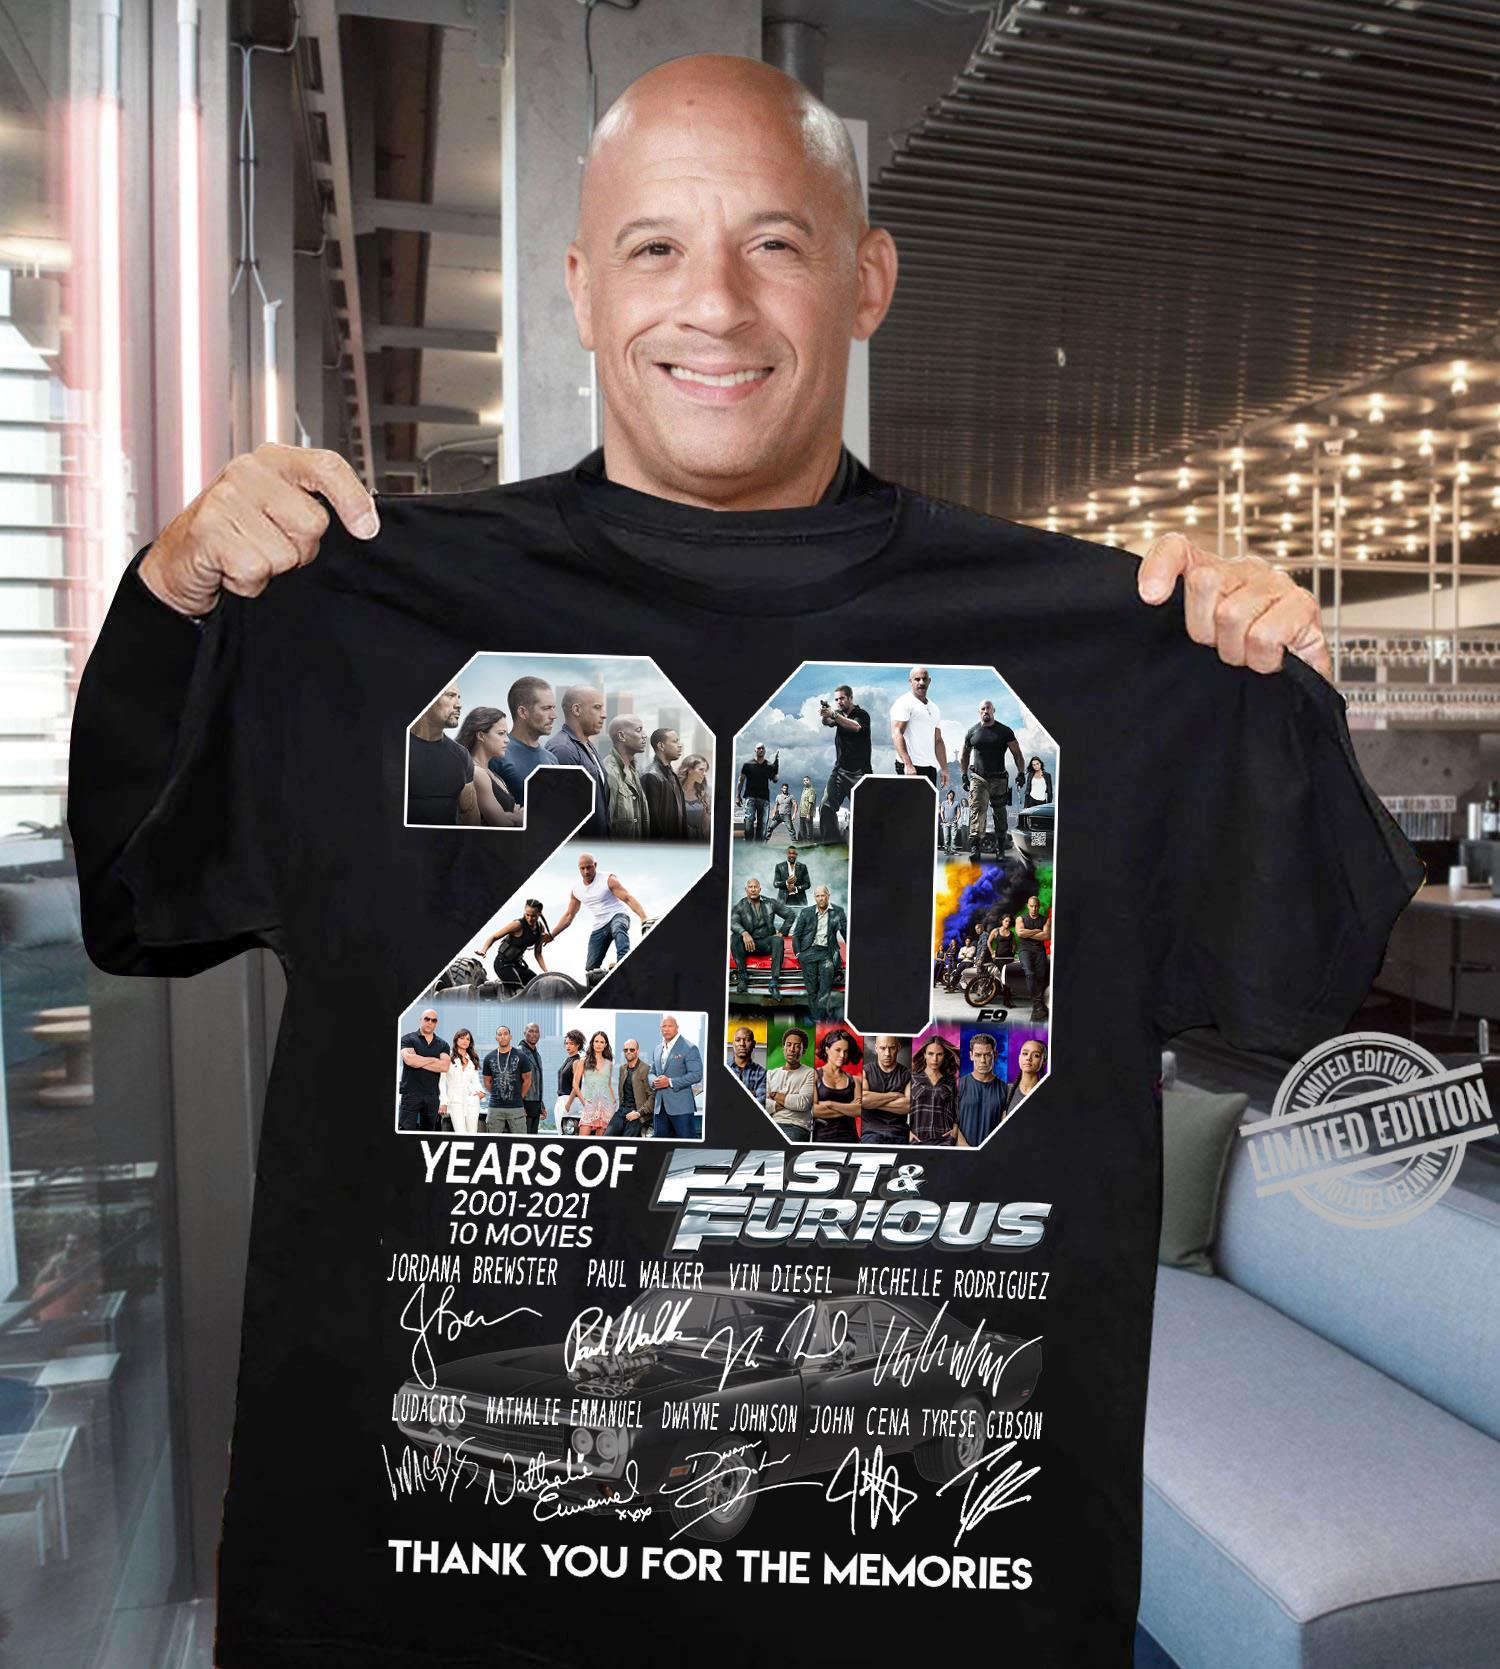 20 Years Of 2001-2021 10 Moves Fast & Furious Thank You For The Memories Shirt